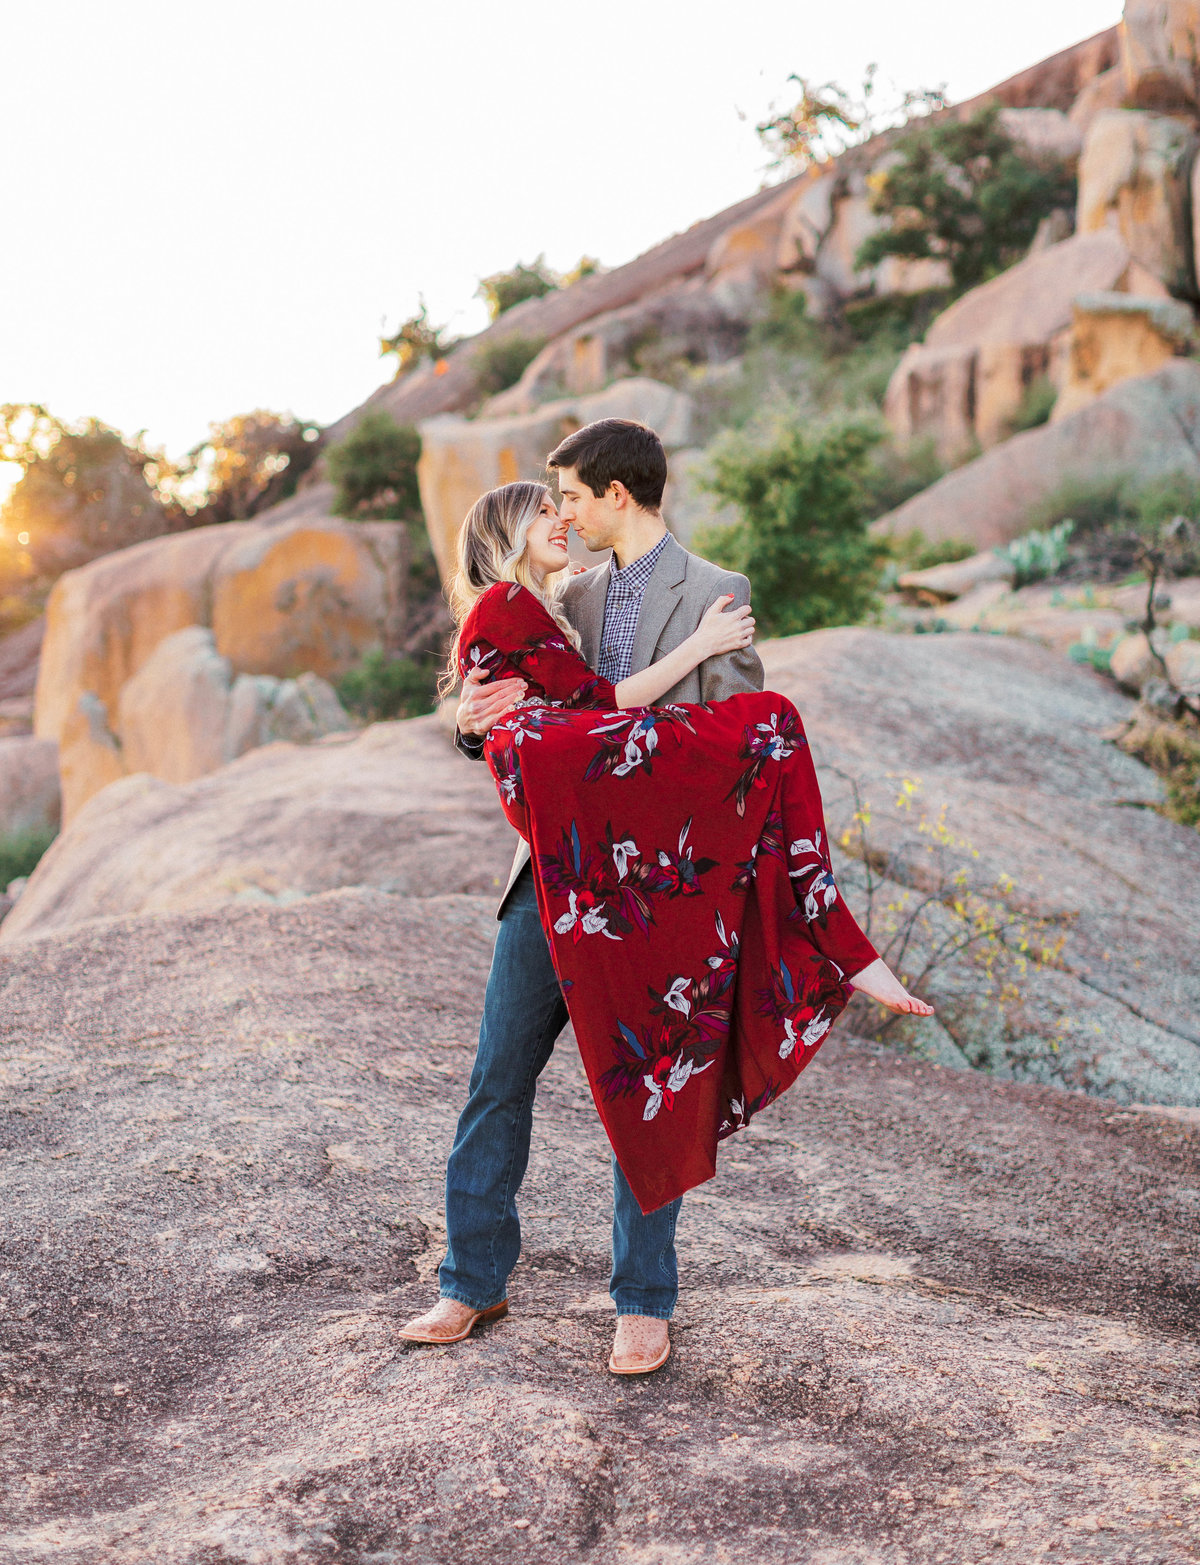 Engagement photo of Guy carrying girl